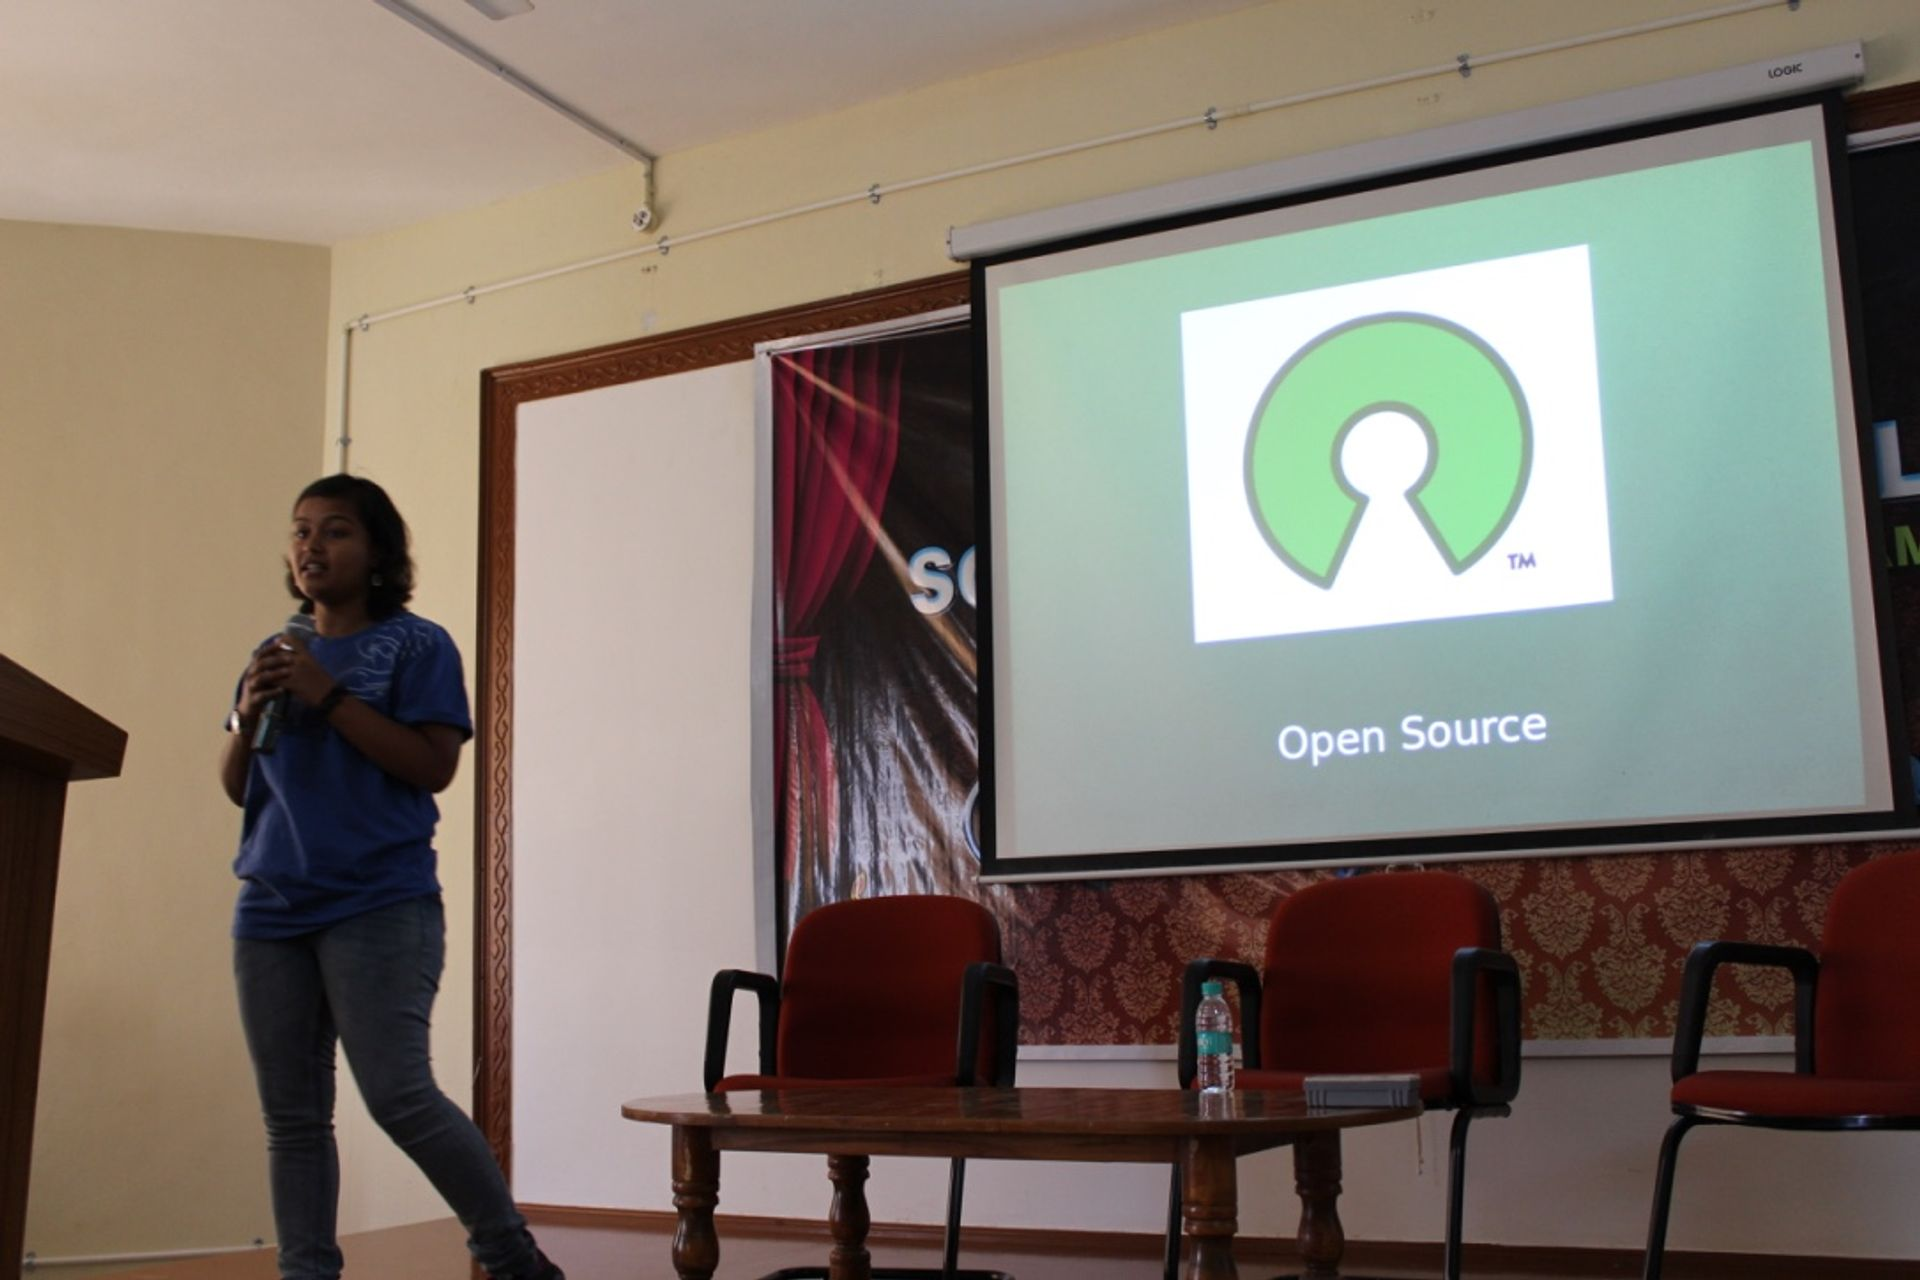 Open source event image 1